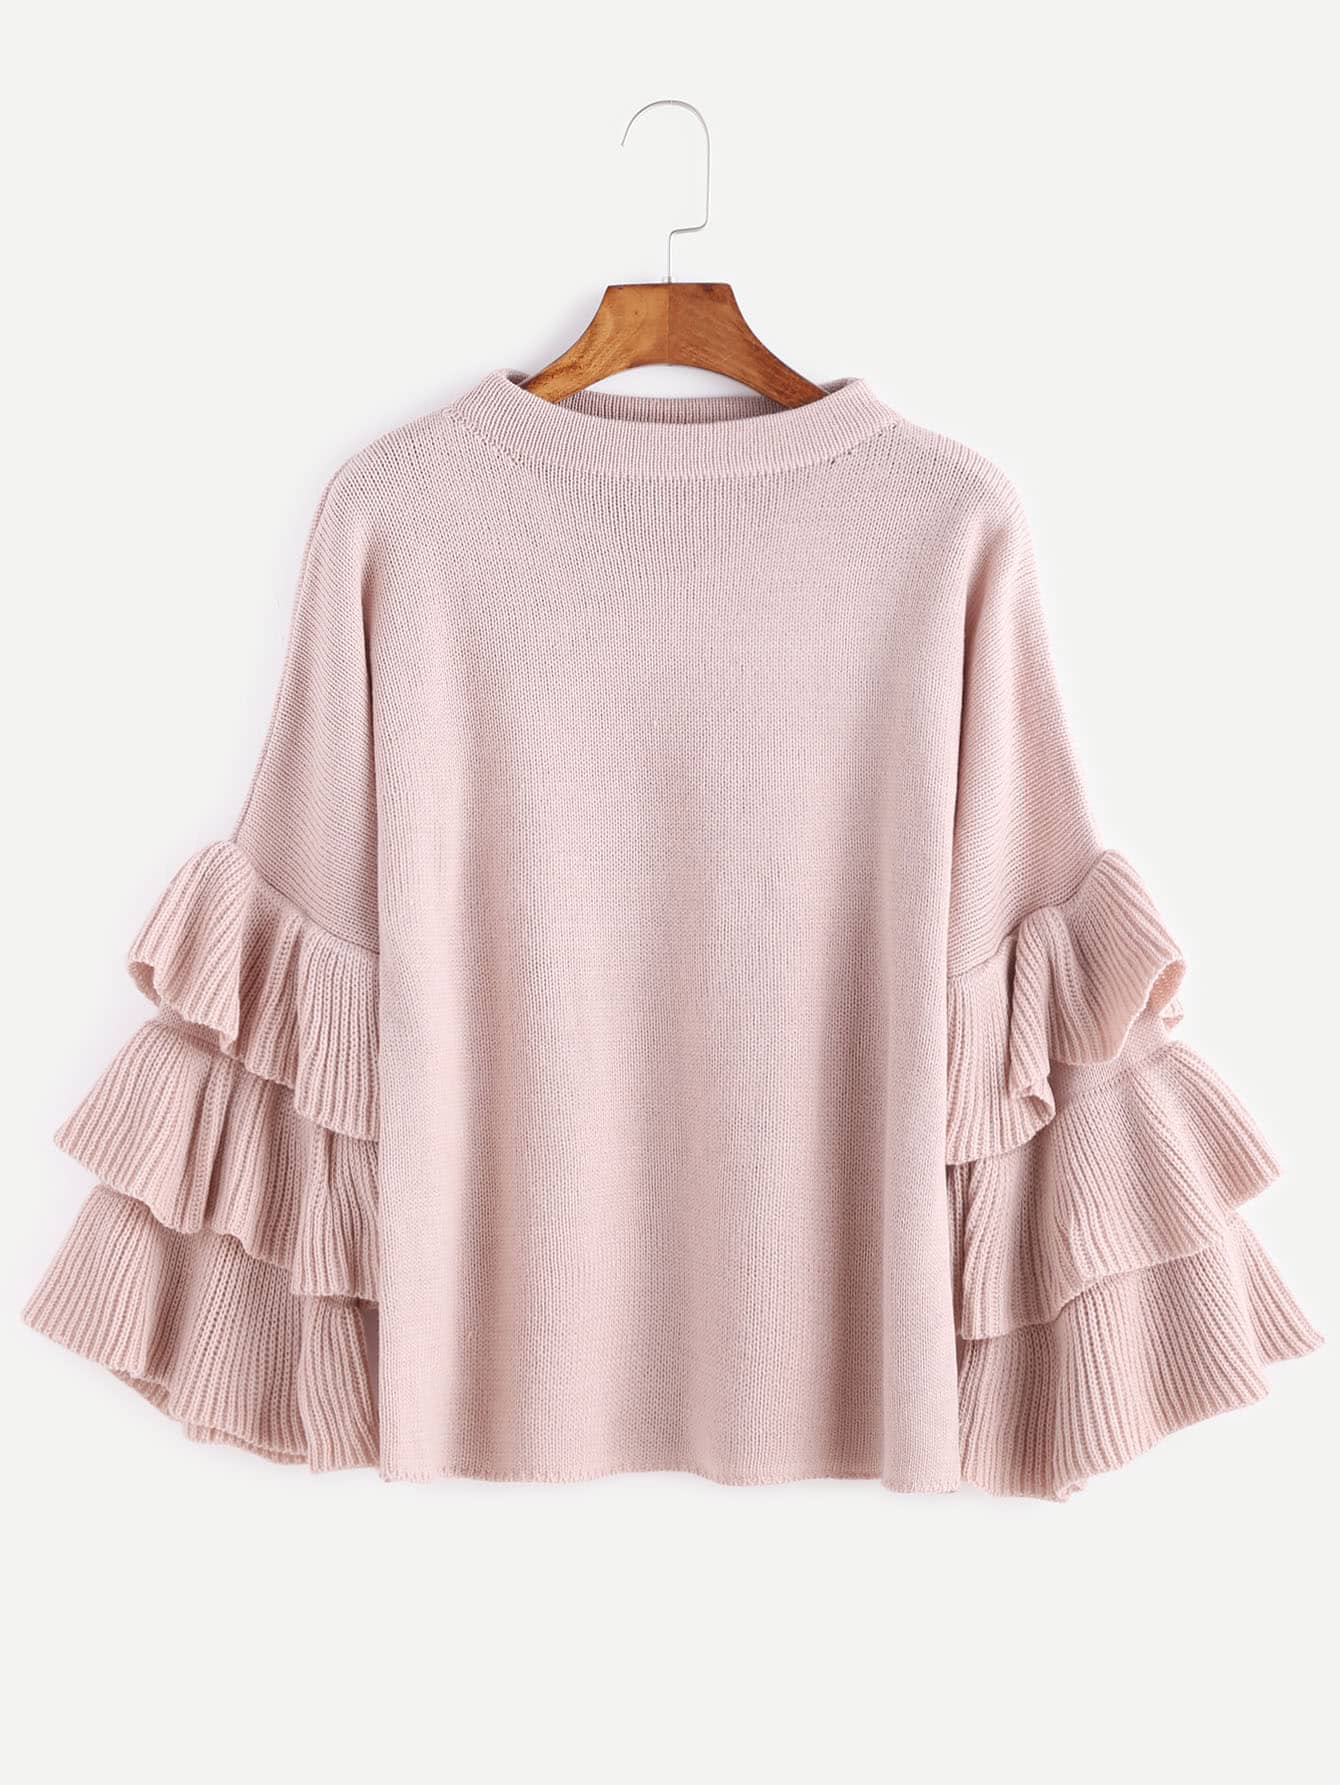 Pink Layered Ruffle Sleeve Pullover Sweater перфоратор bosch gbh 2 24 dre